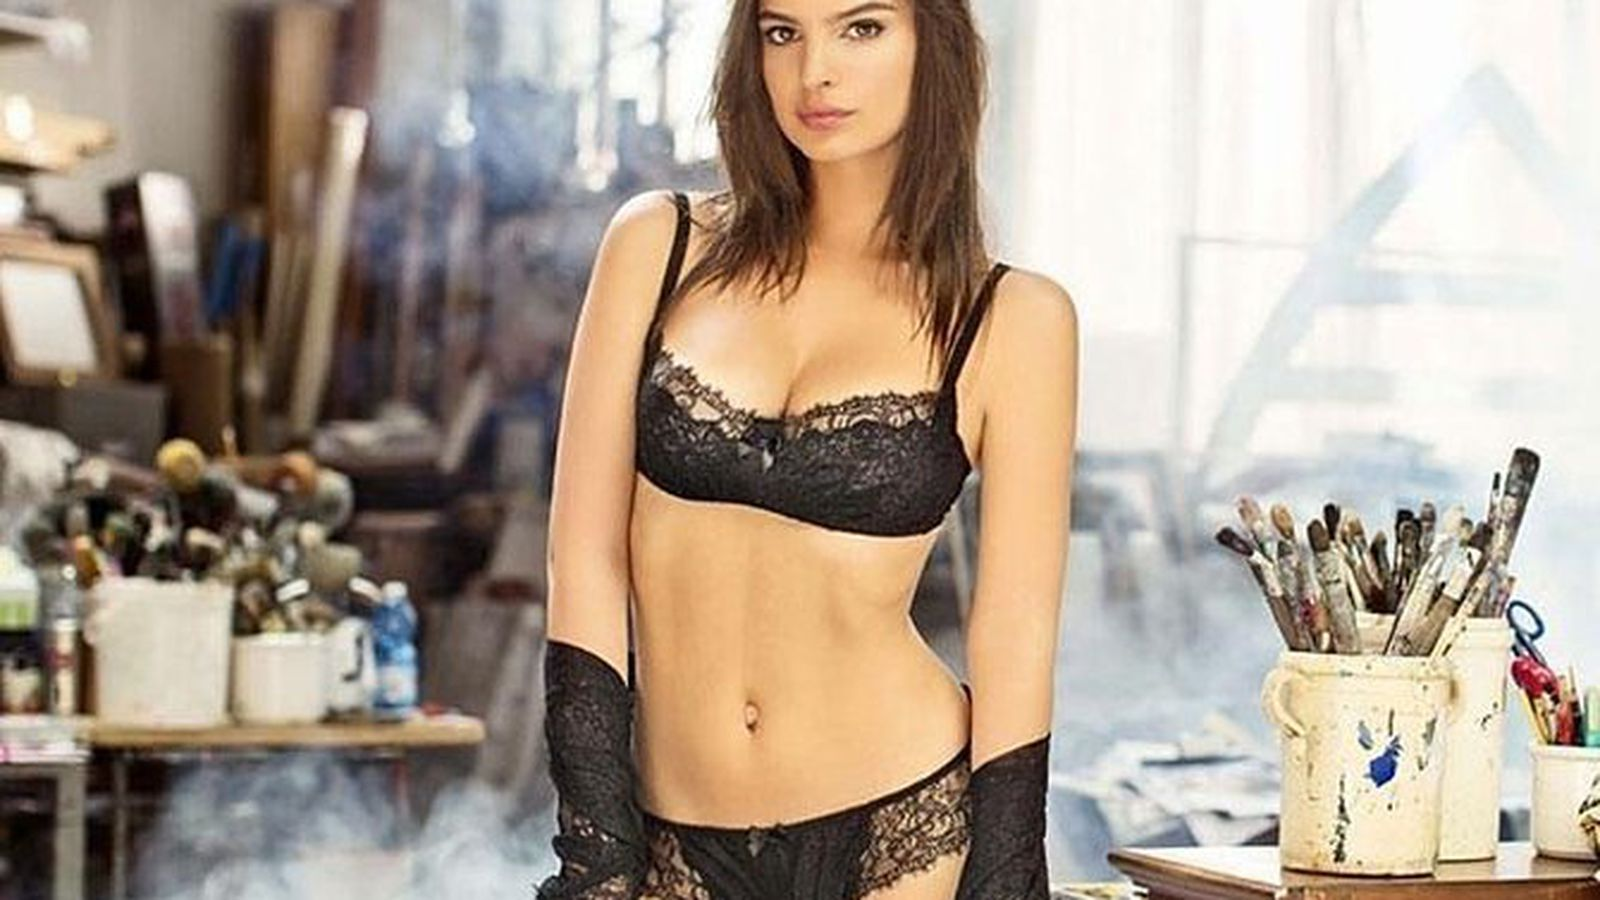 Emily Ratajkowski Wears More Clothes In New Lingerie Ads